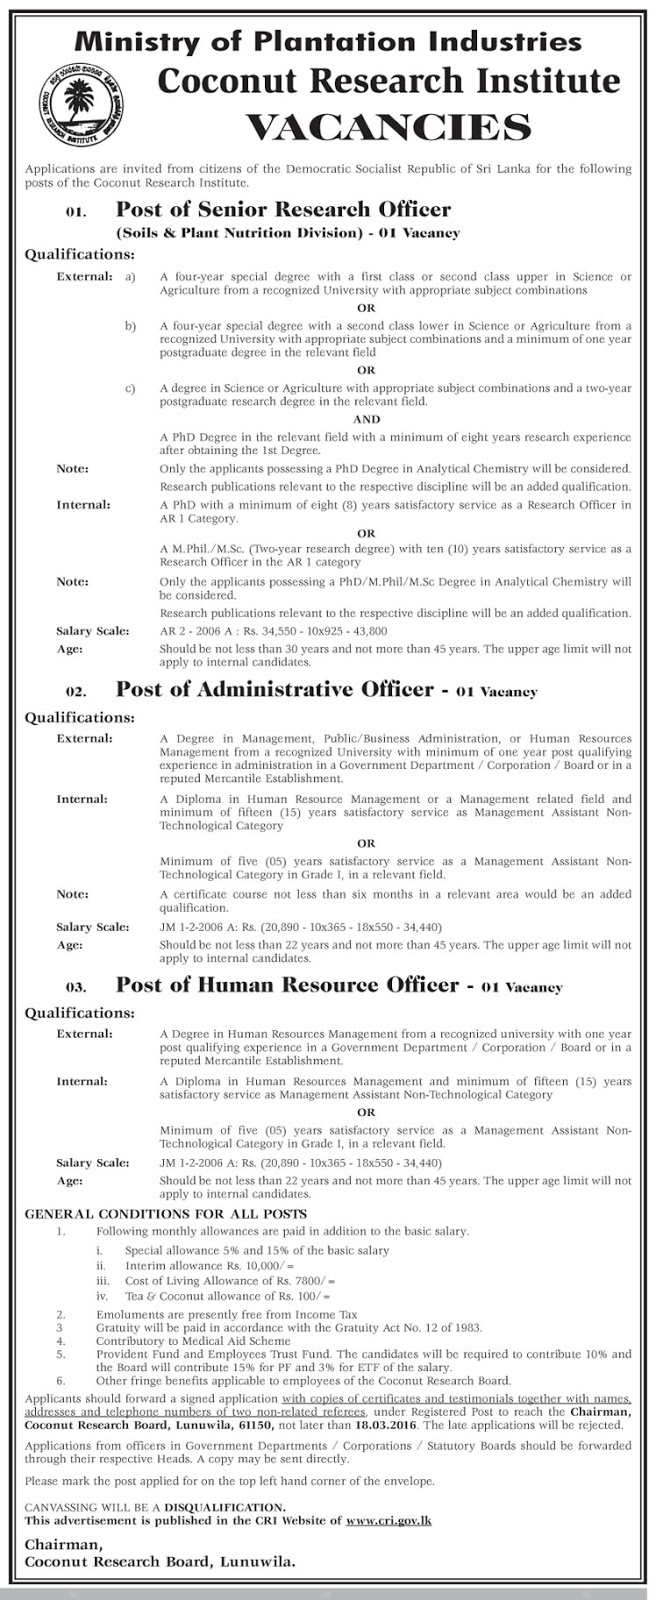 Vacancies – Senior Research Officer – Administrative Officer – Human Resource Officer – Coconut Research Institute - Ministry of Plantation Industries